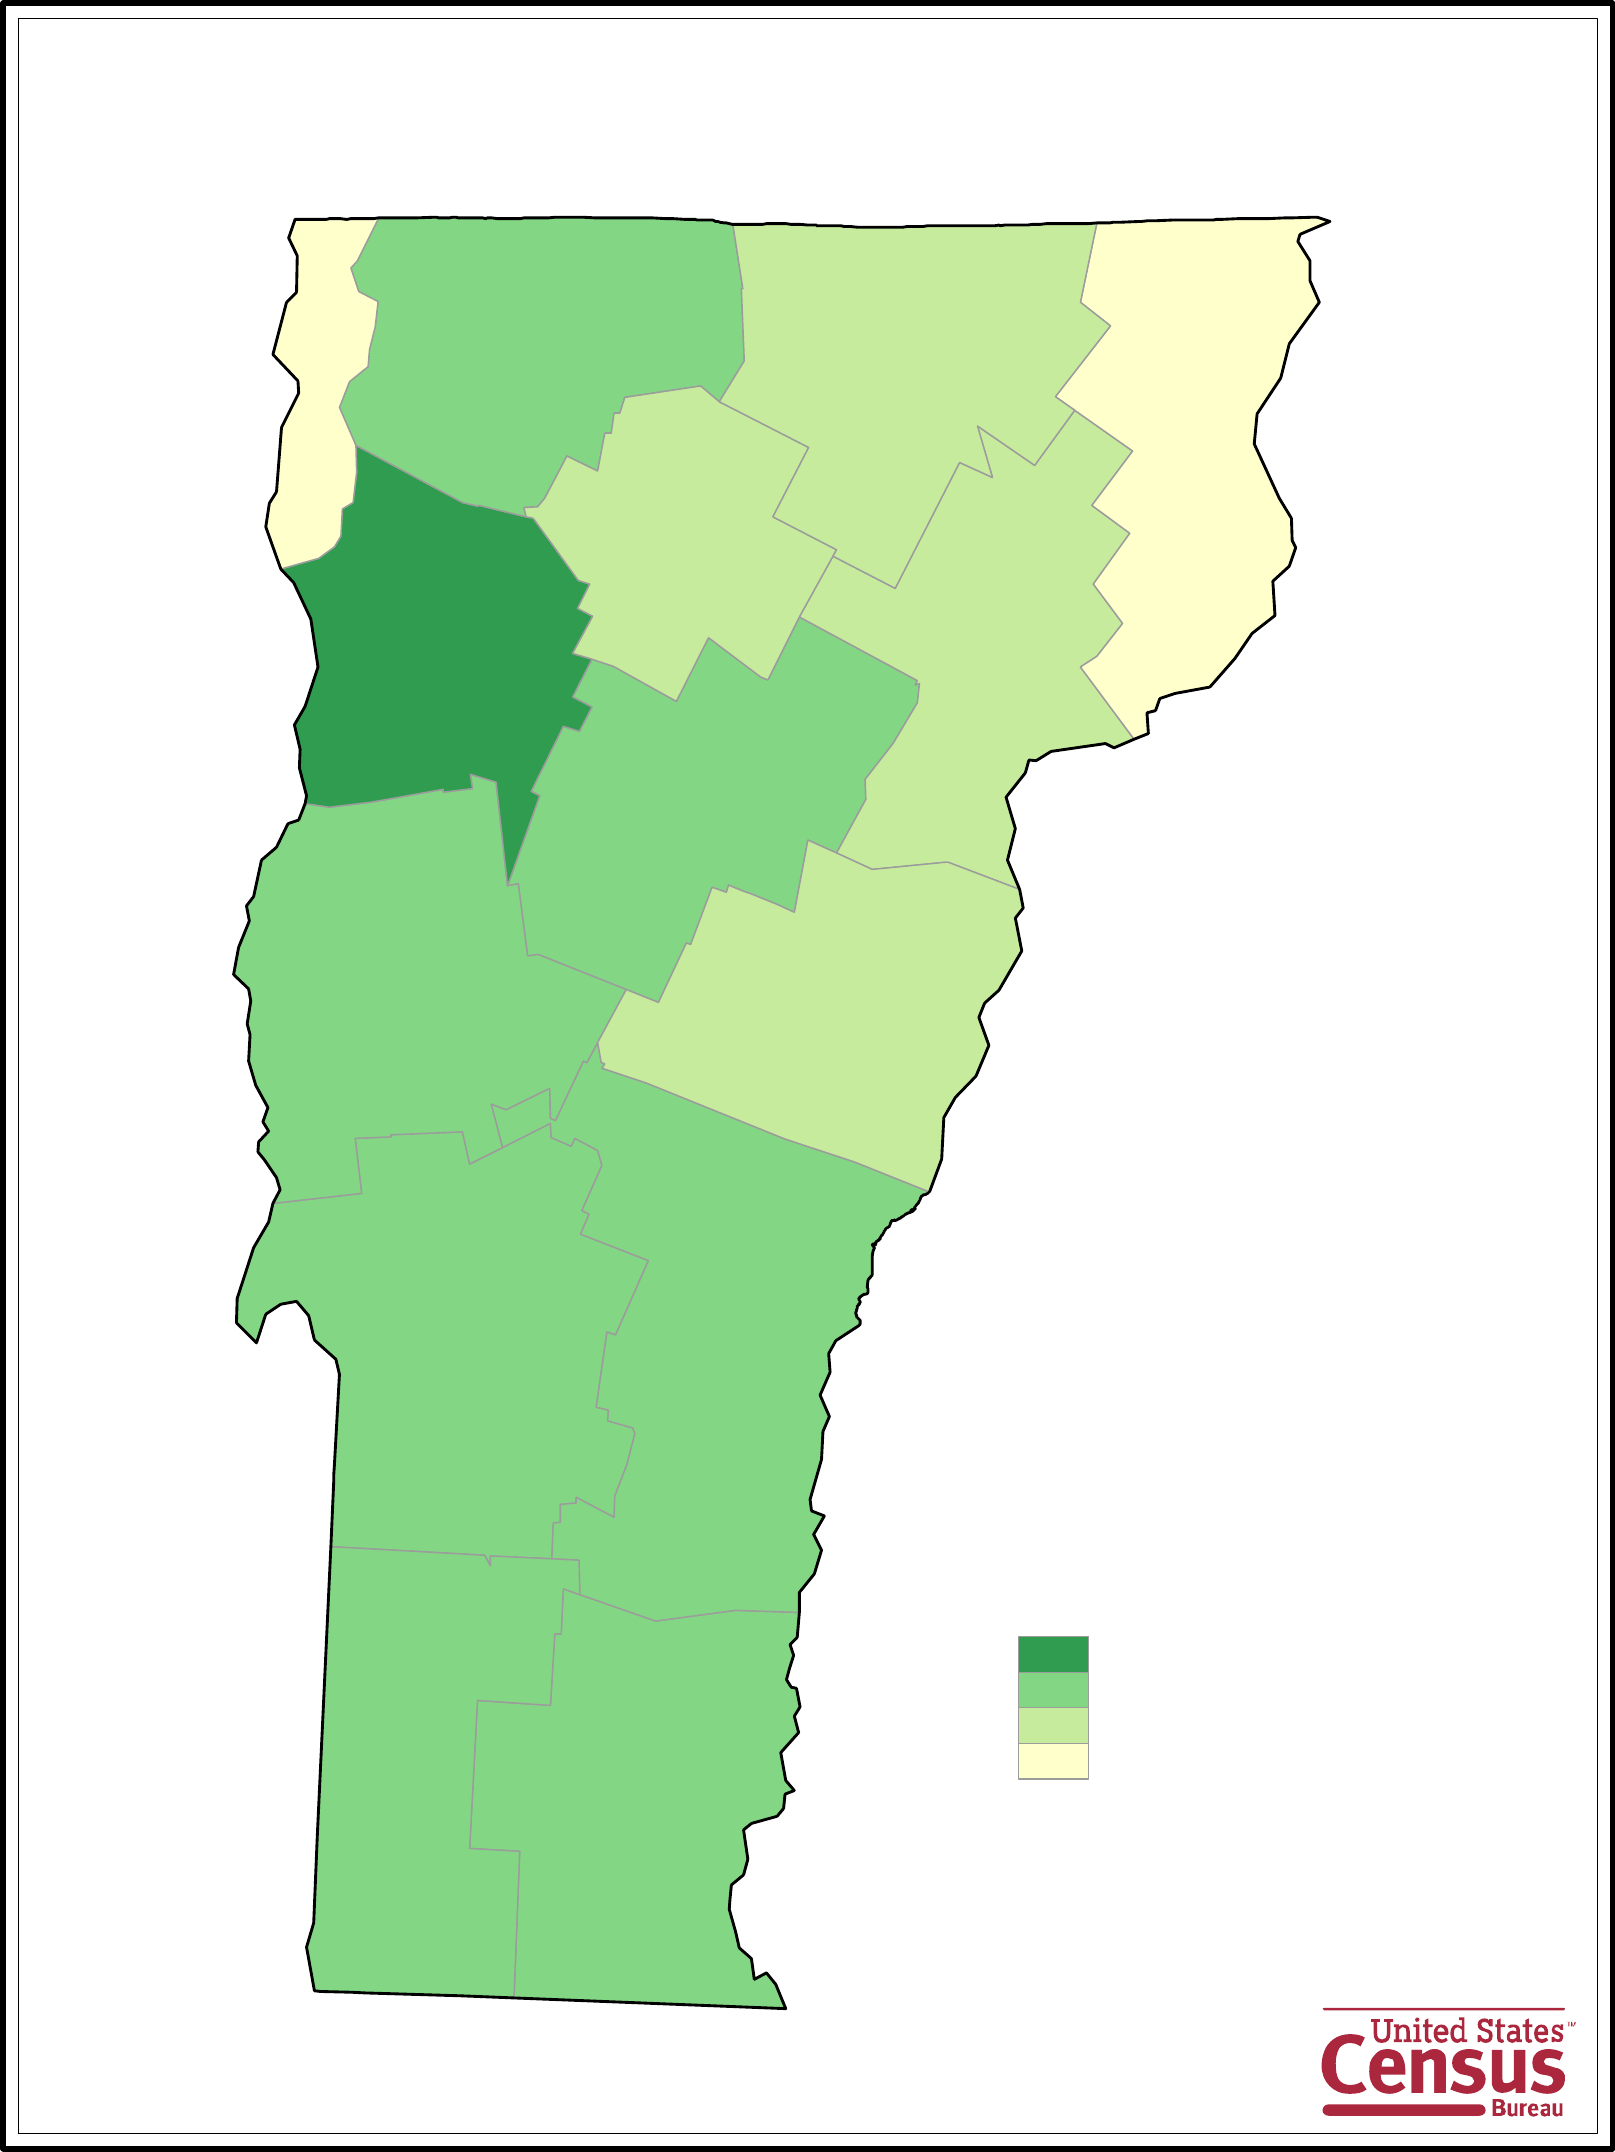 Vermont County Population Map Free Download